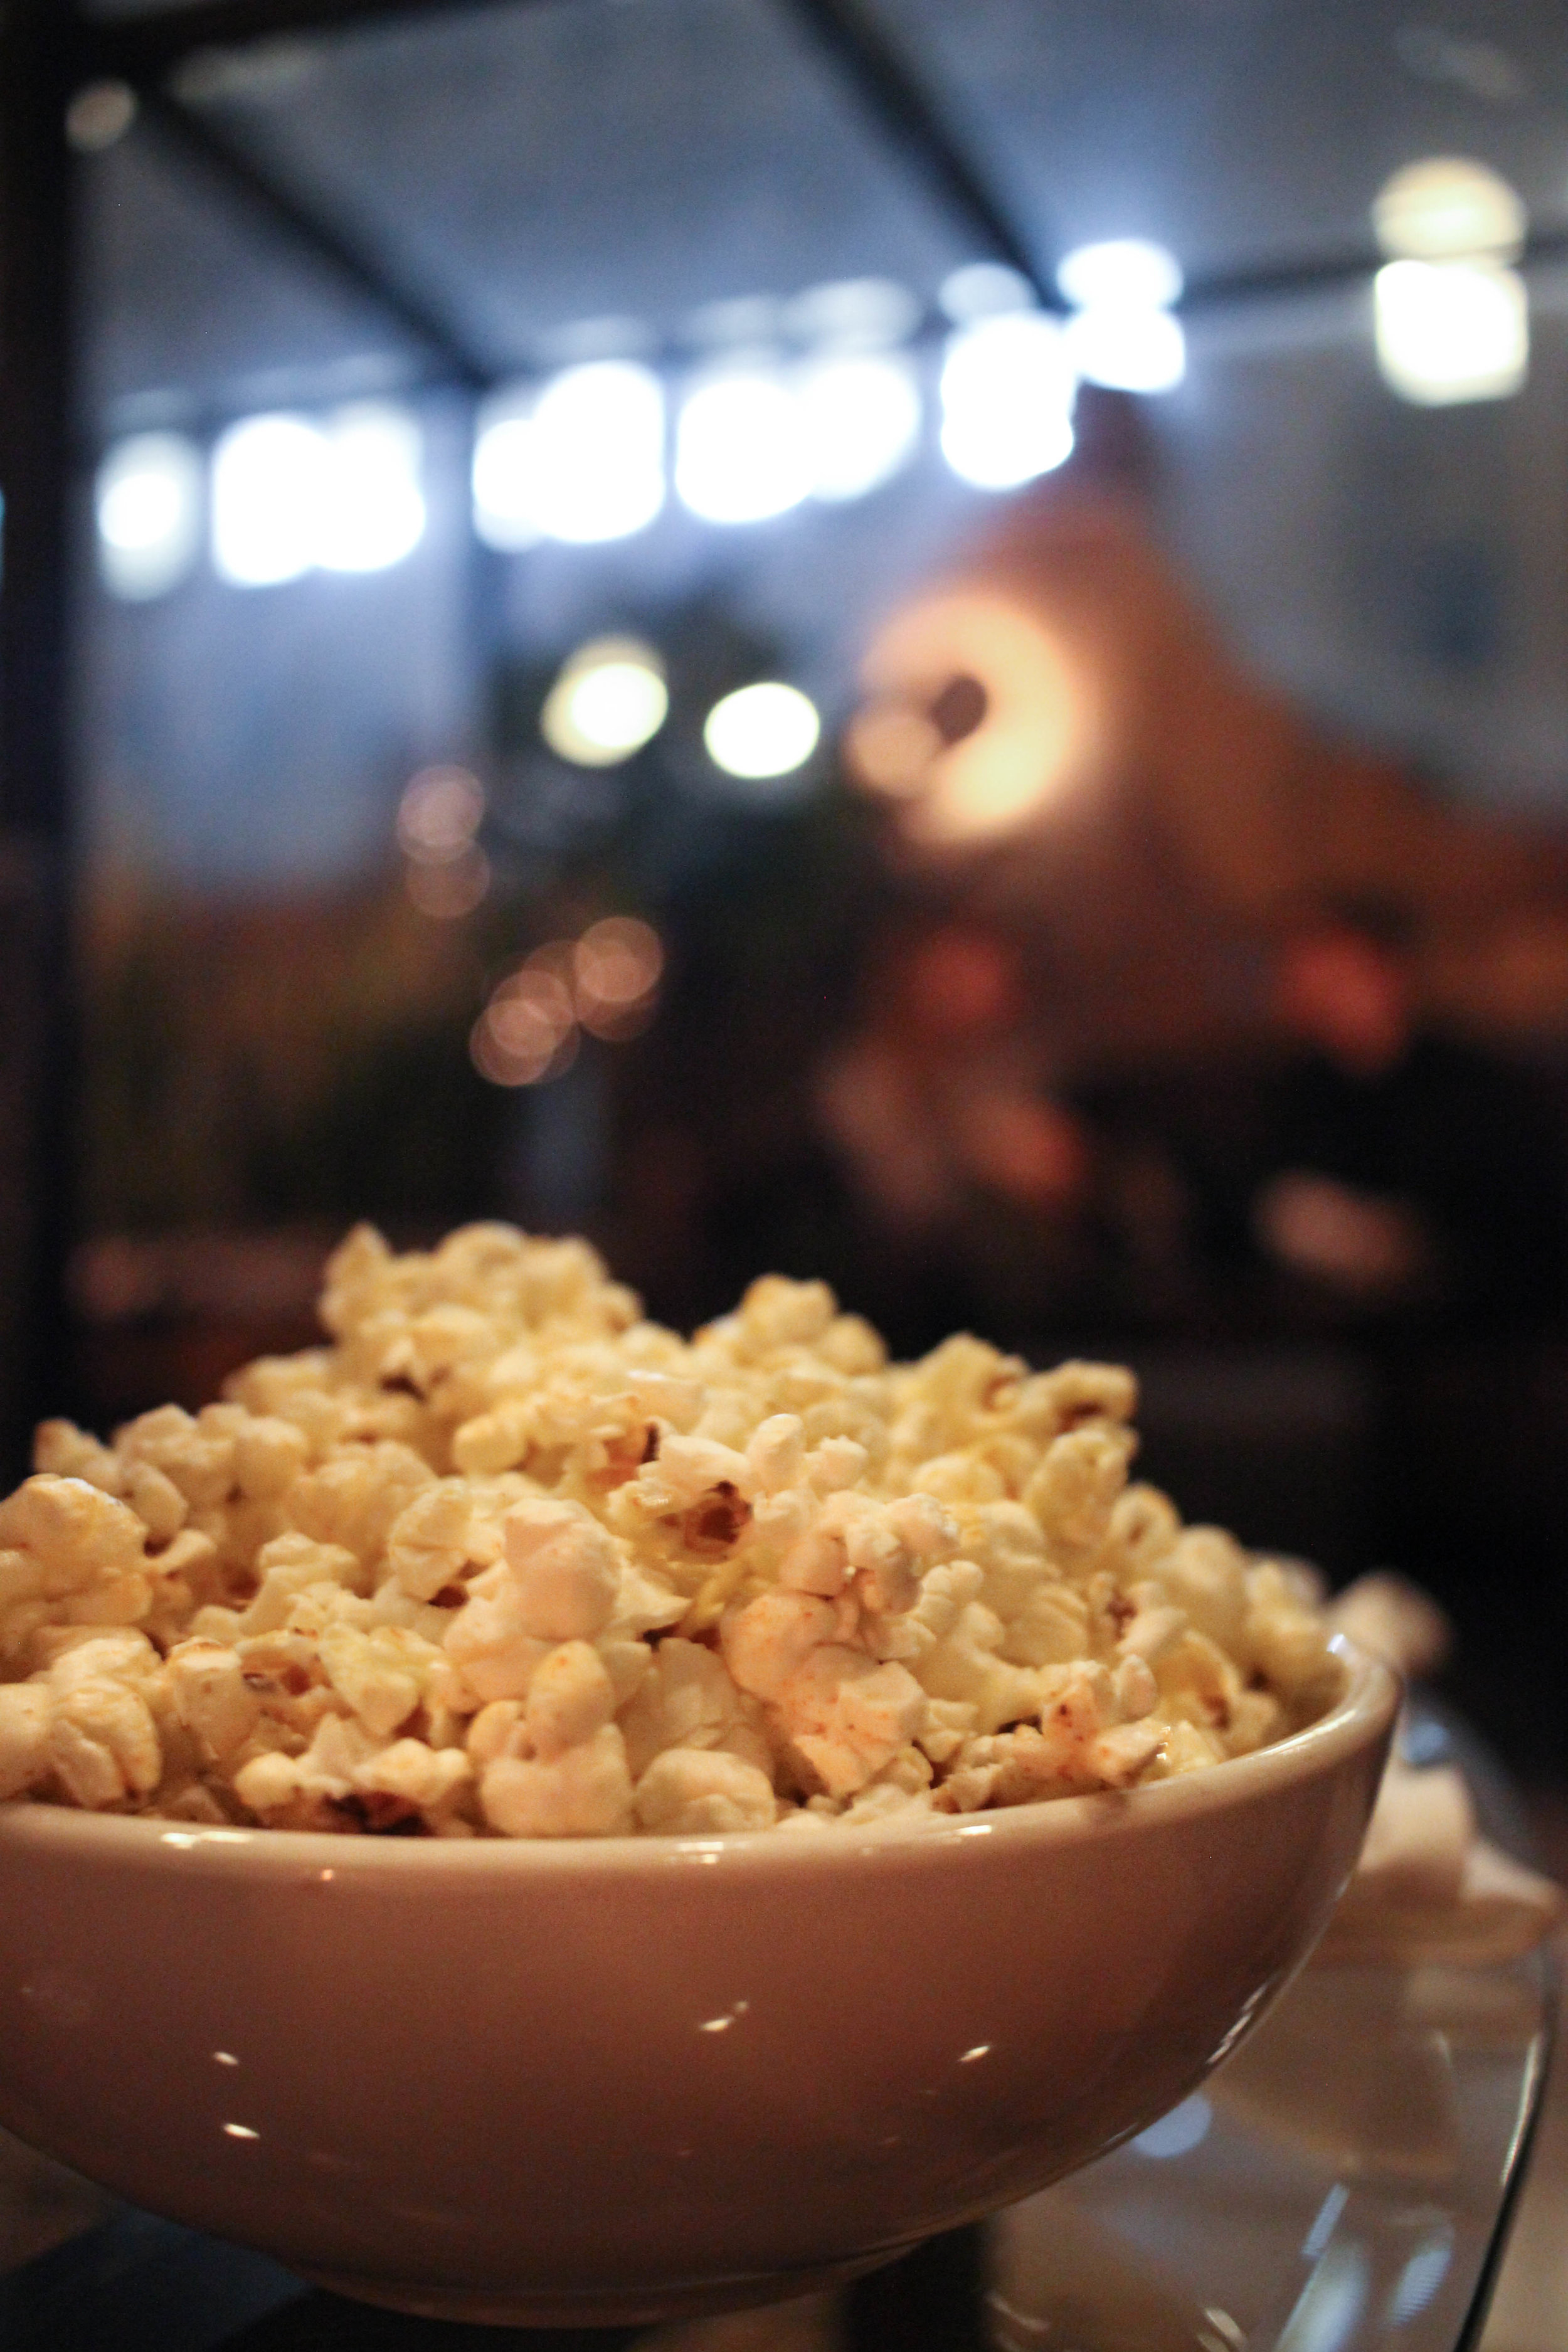 Truffled Popcorn;Seasoned with our special spicy mix,drizzled with Truffle Oil.